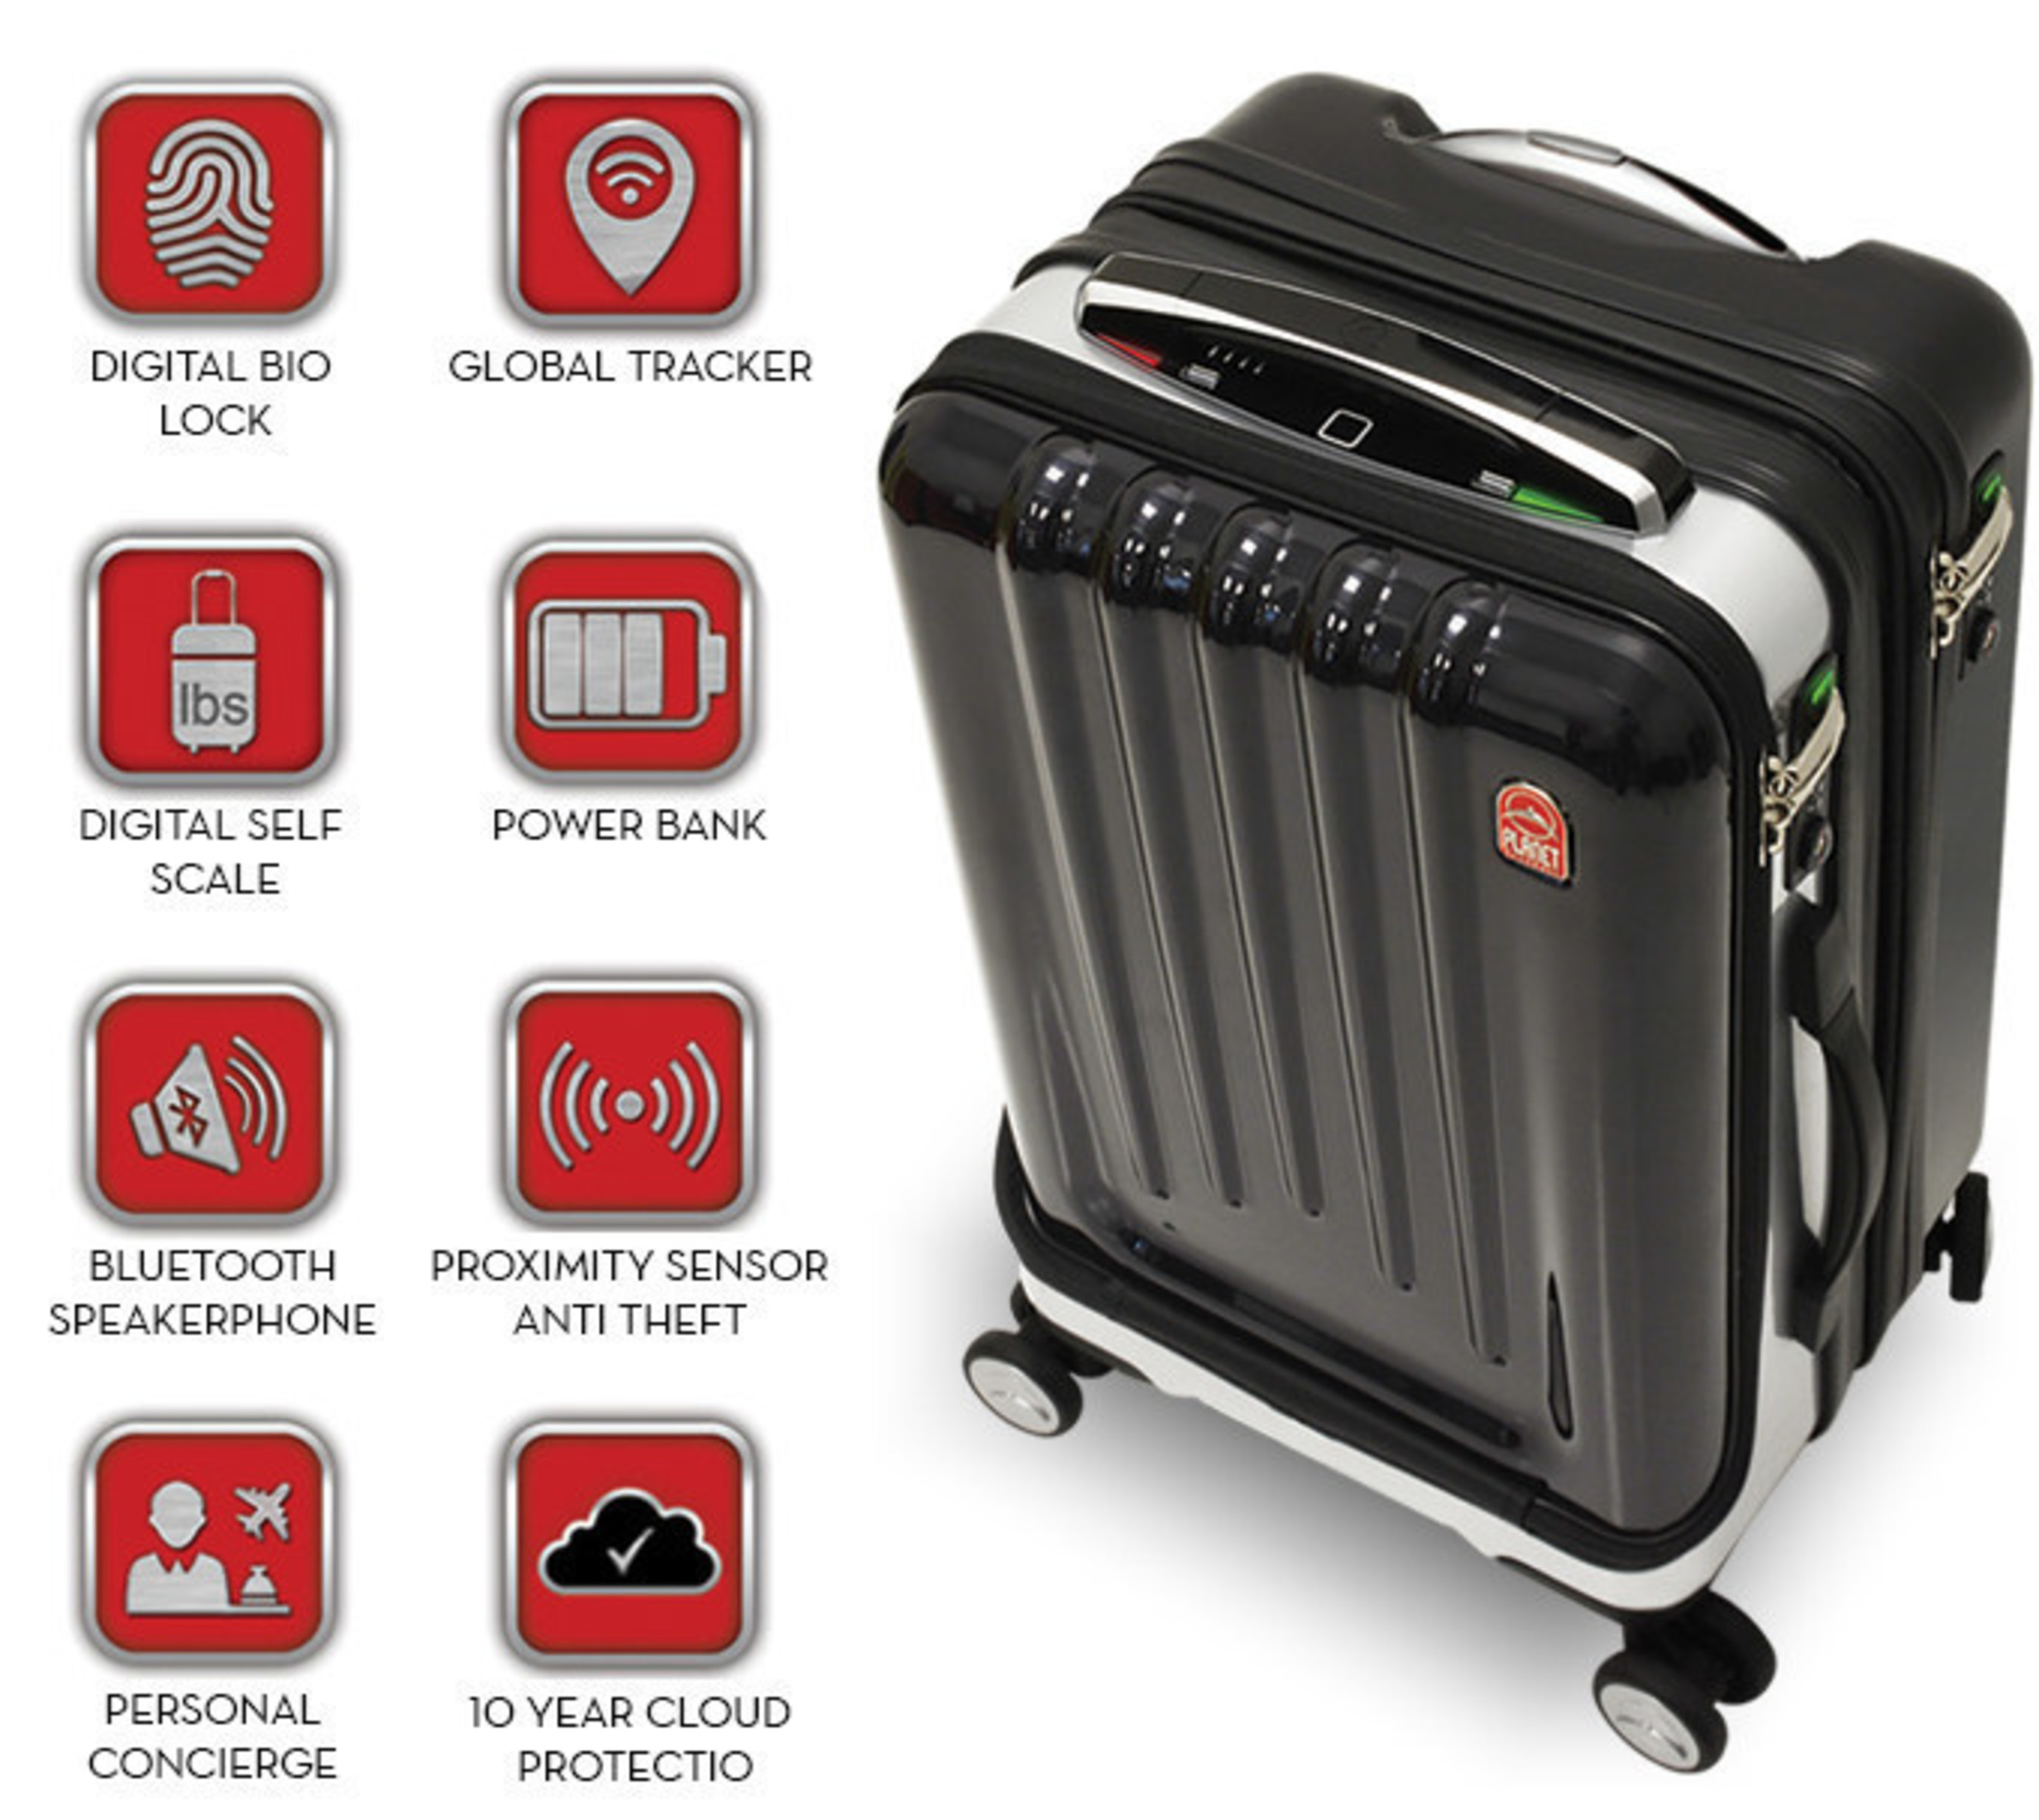 Space Case 1 - The world's most advanced line of smart luggage set to 'launch' June 1st